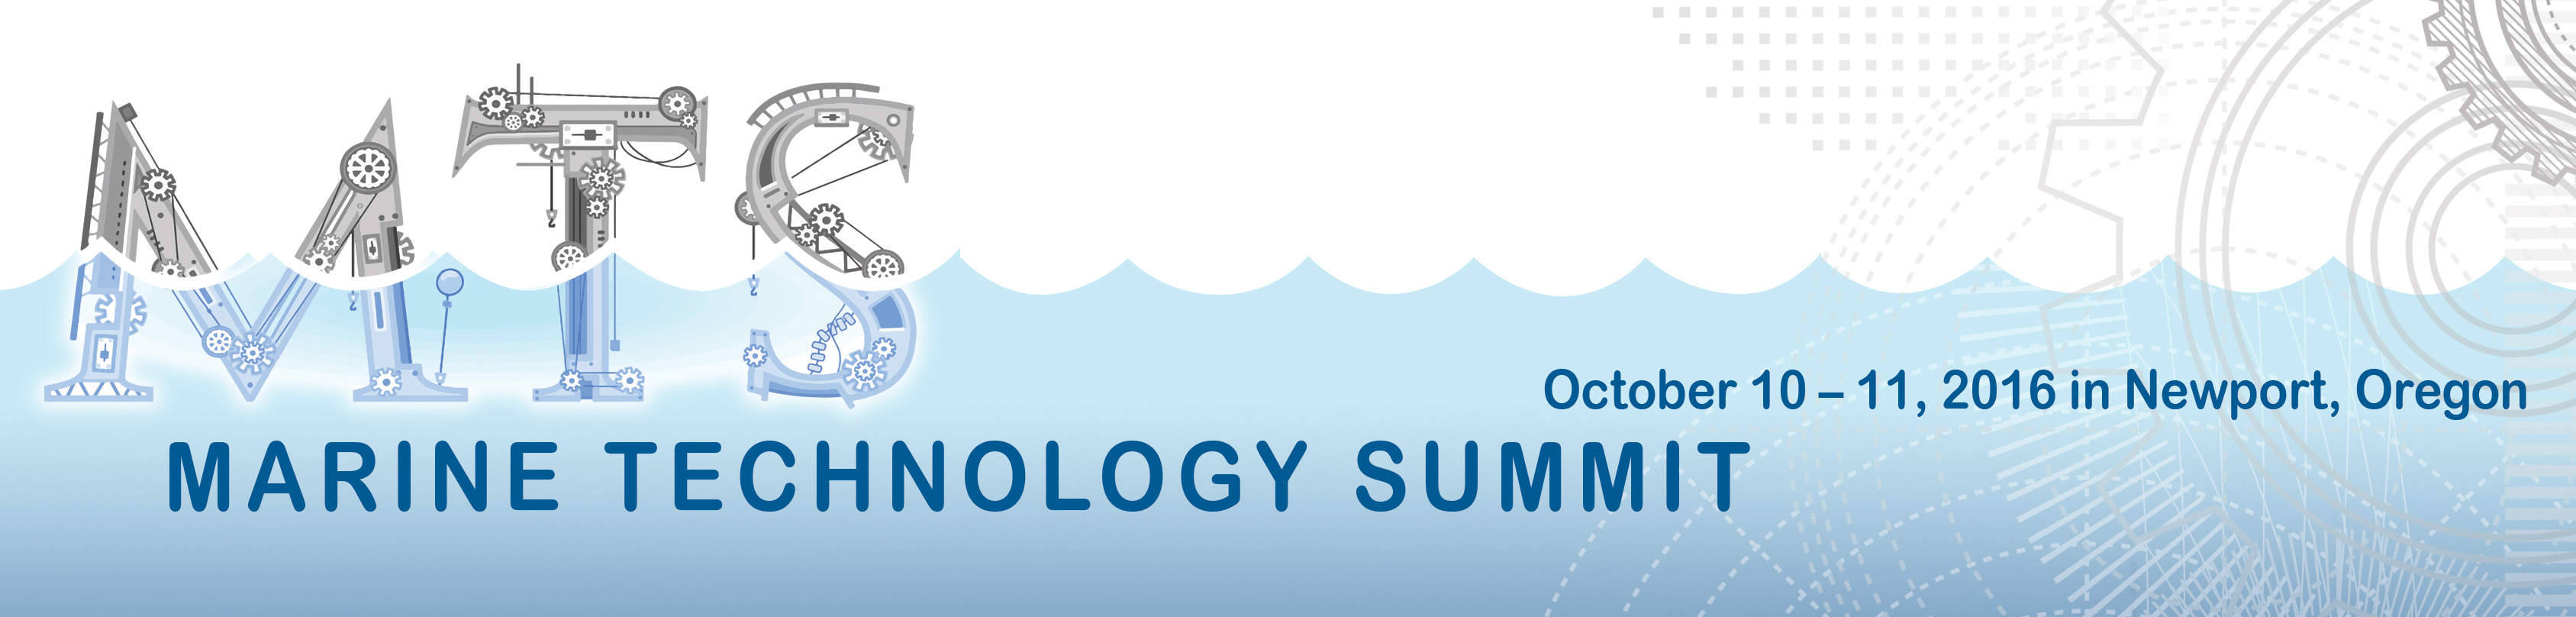 NW Marine Technology Summit